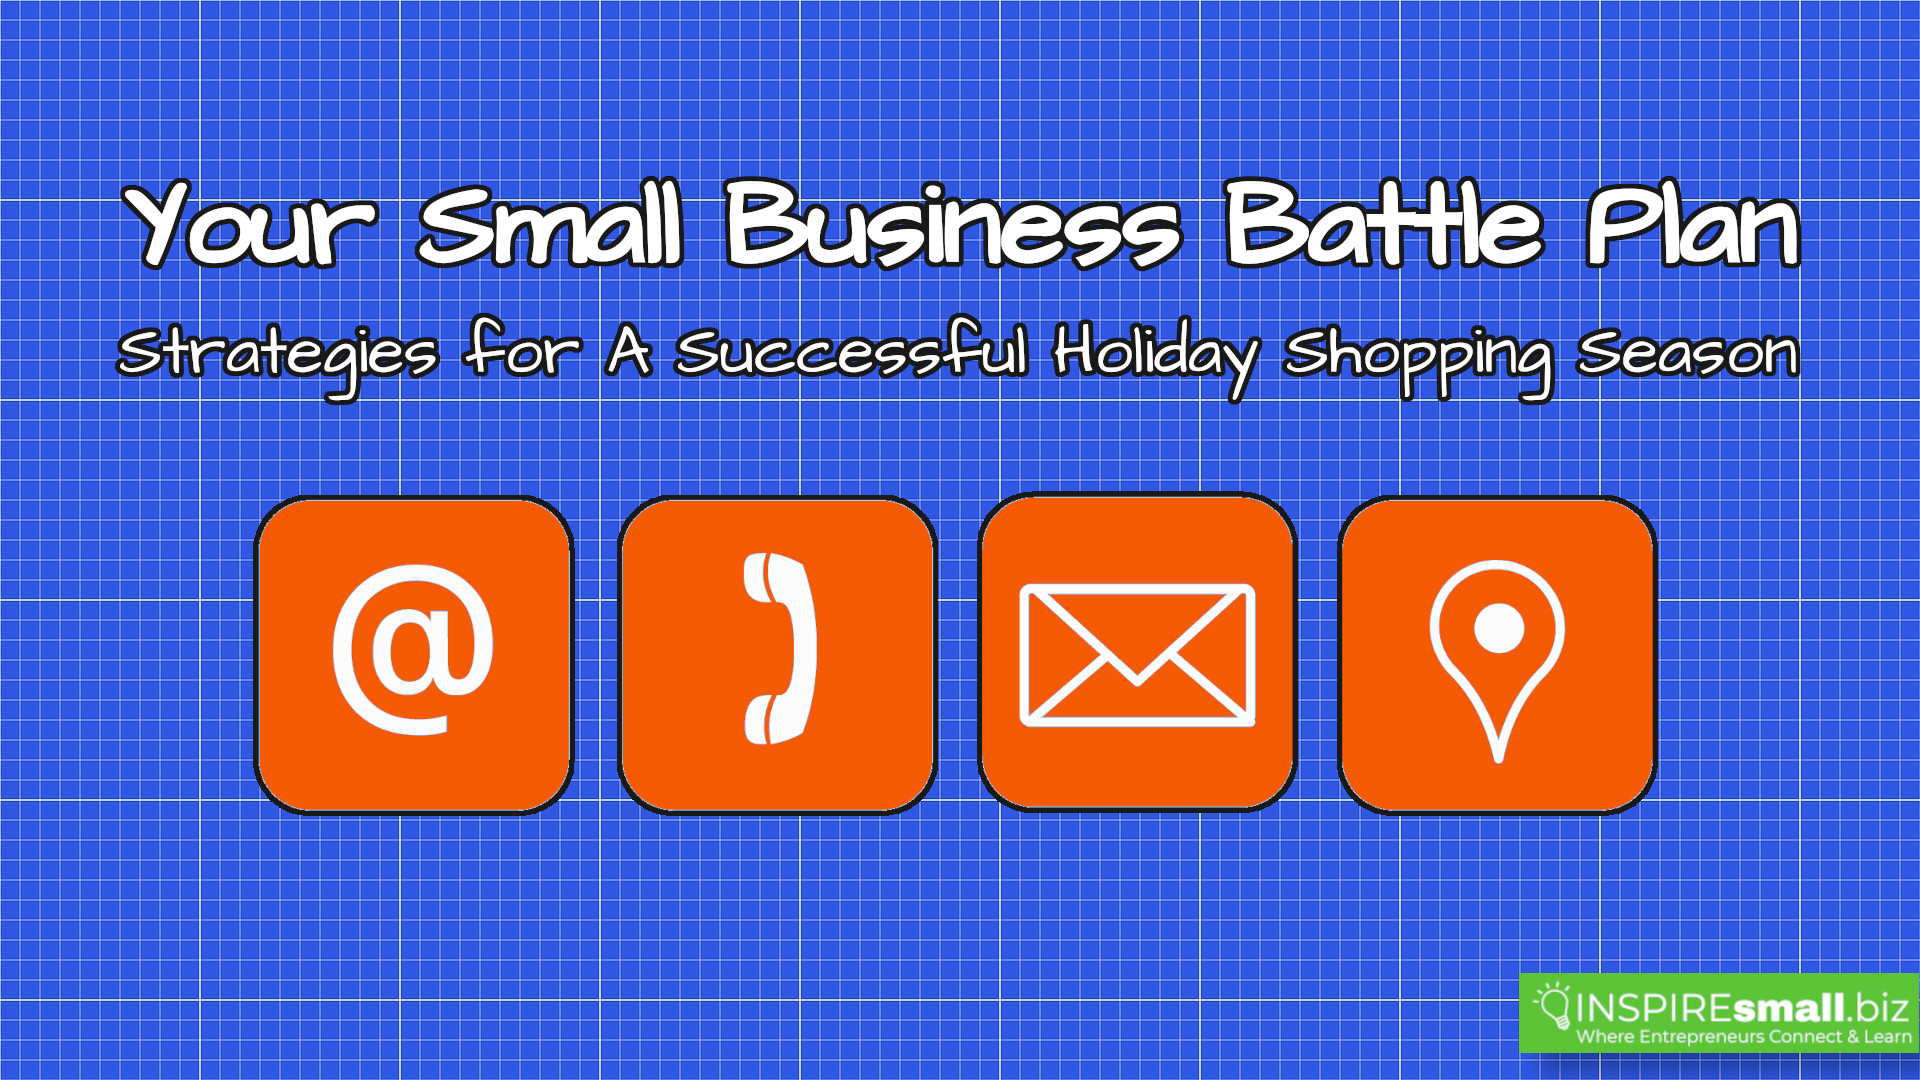 Your Small Business Battle Plan - INSPIREsmall.biz Monday Networking